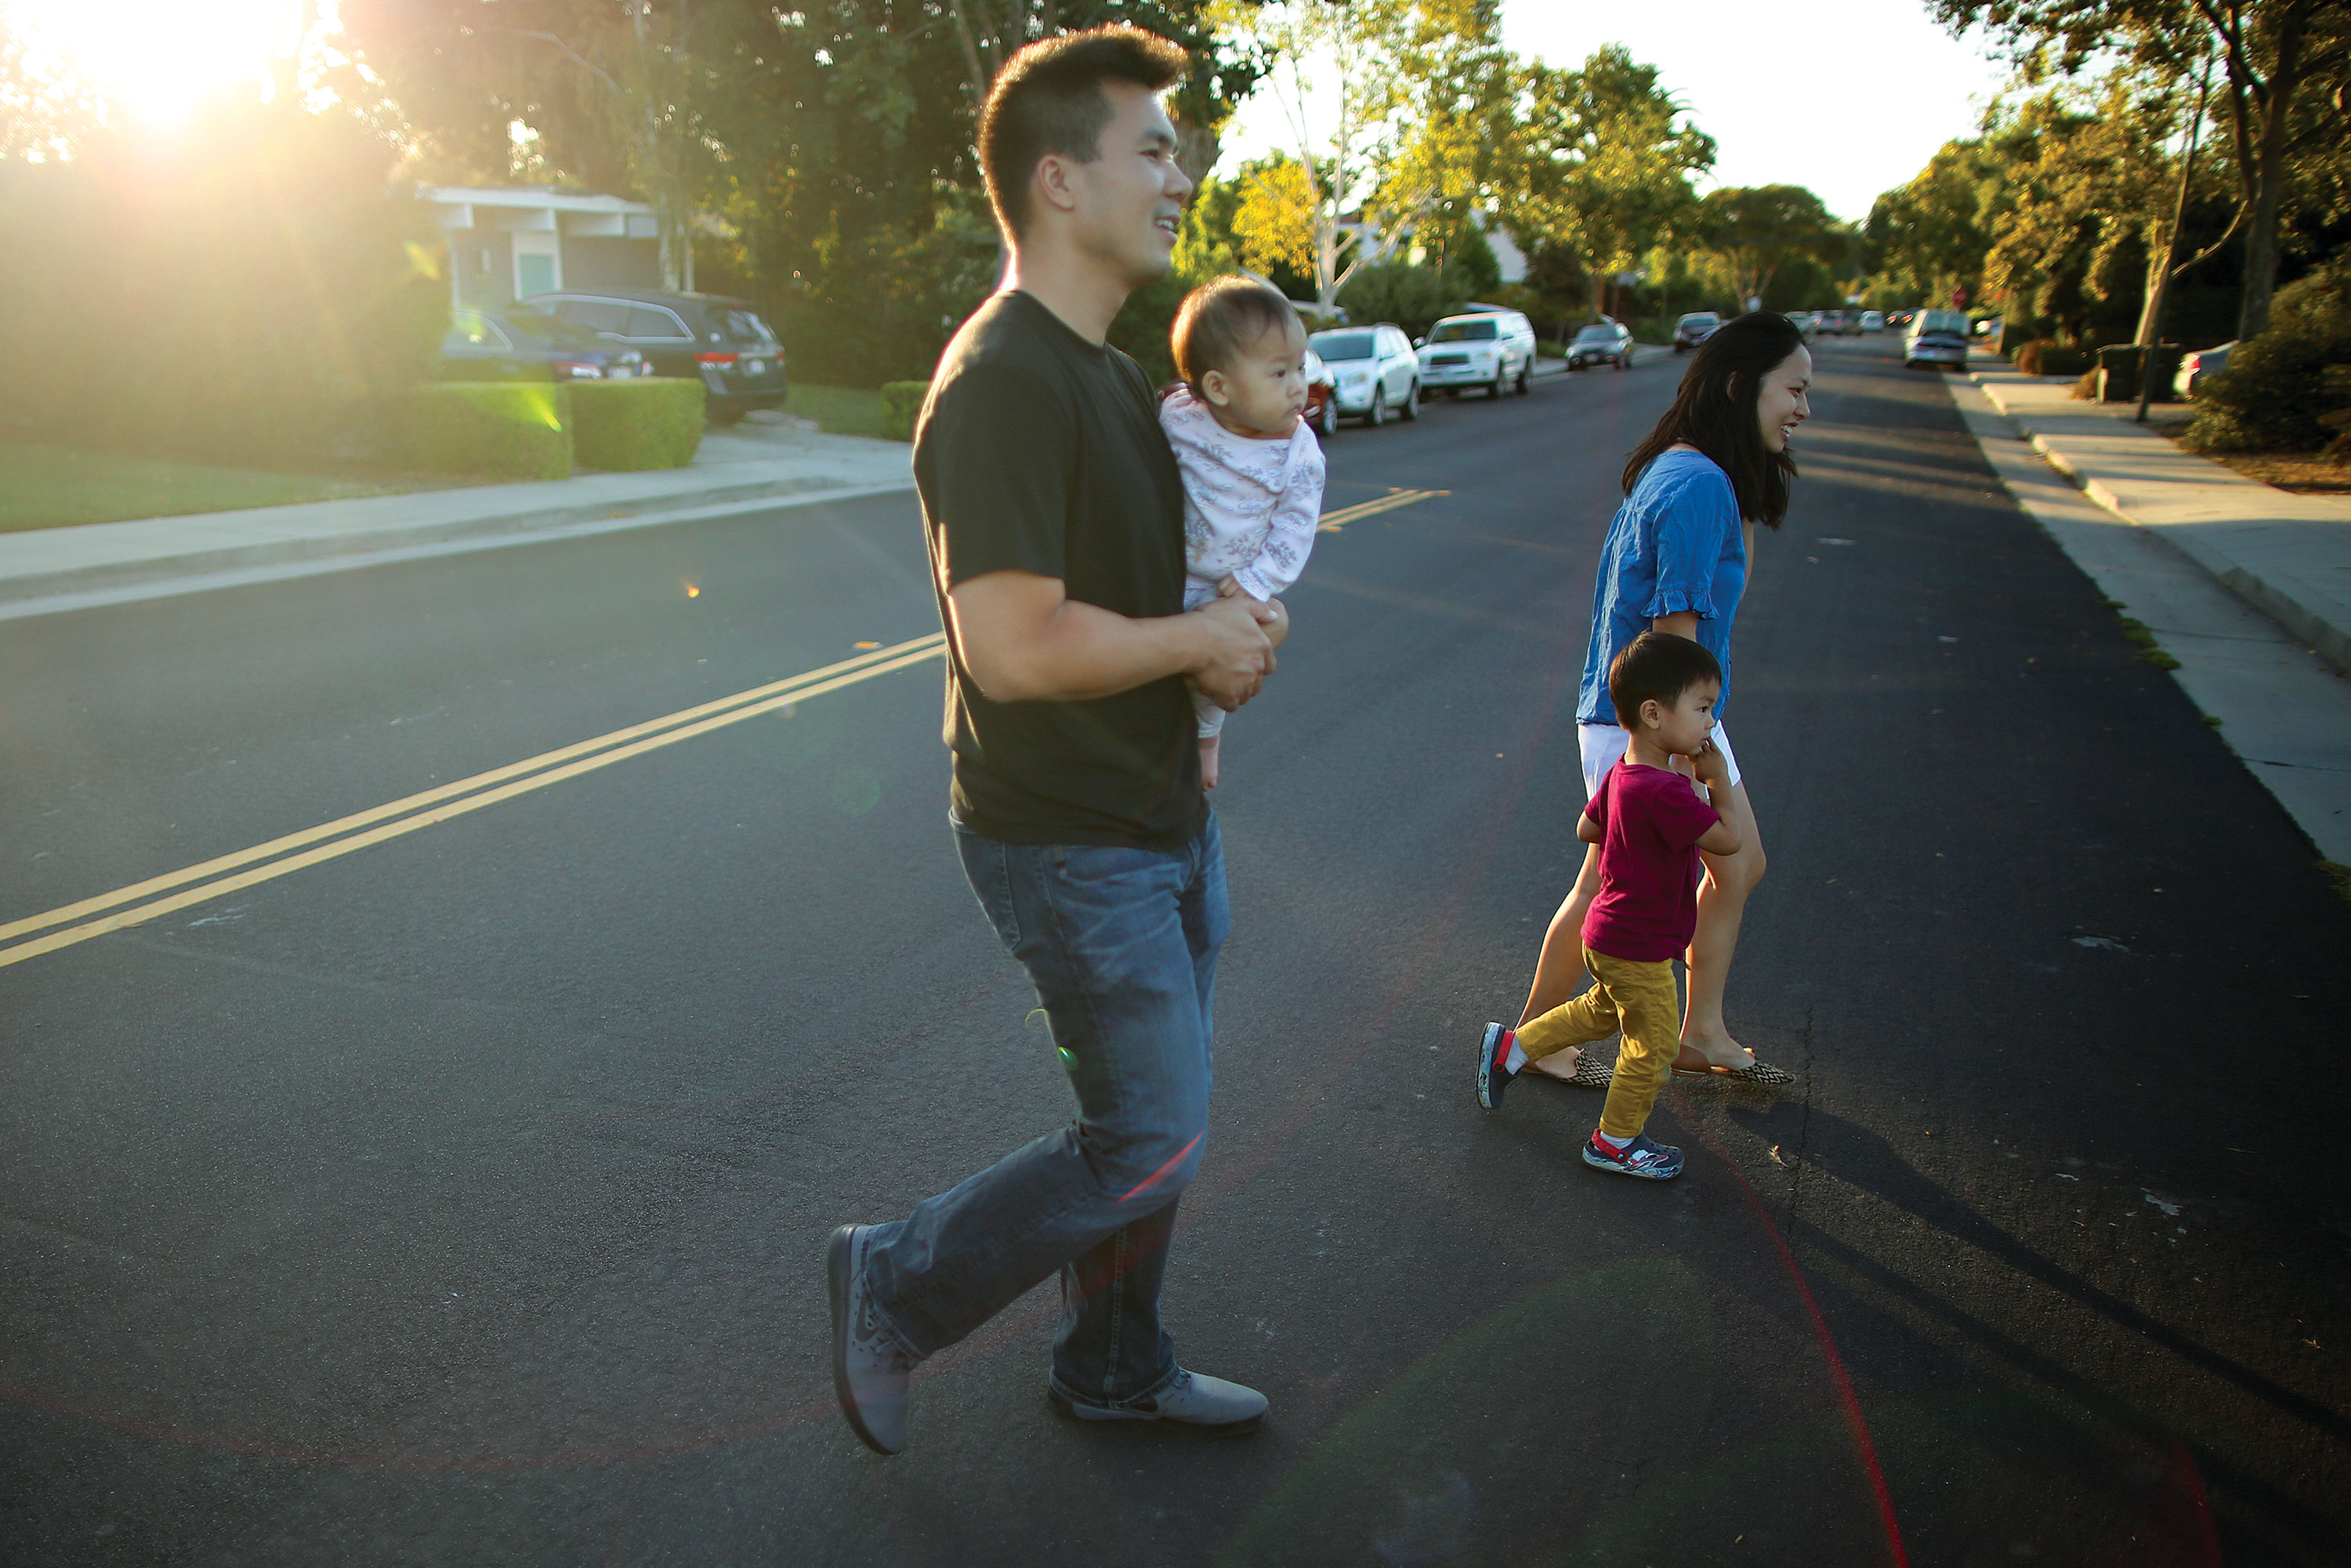 Parents David Liu and Angela Fan, with kids Zoe and Andrew, enjoy a walk along Greer Road in Palo Alto, to which they recently moved. Photo by Sammy Dallal.